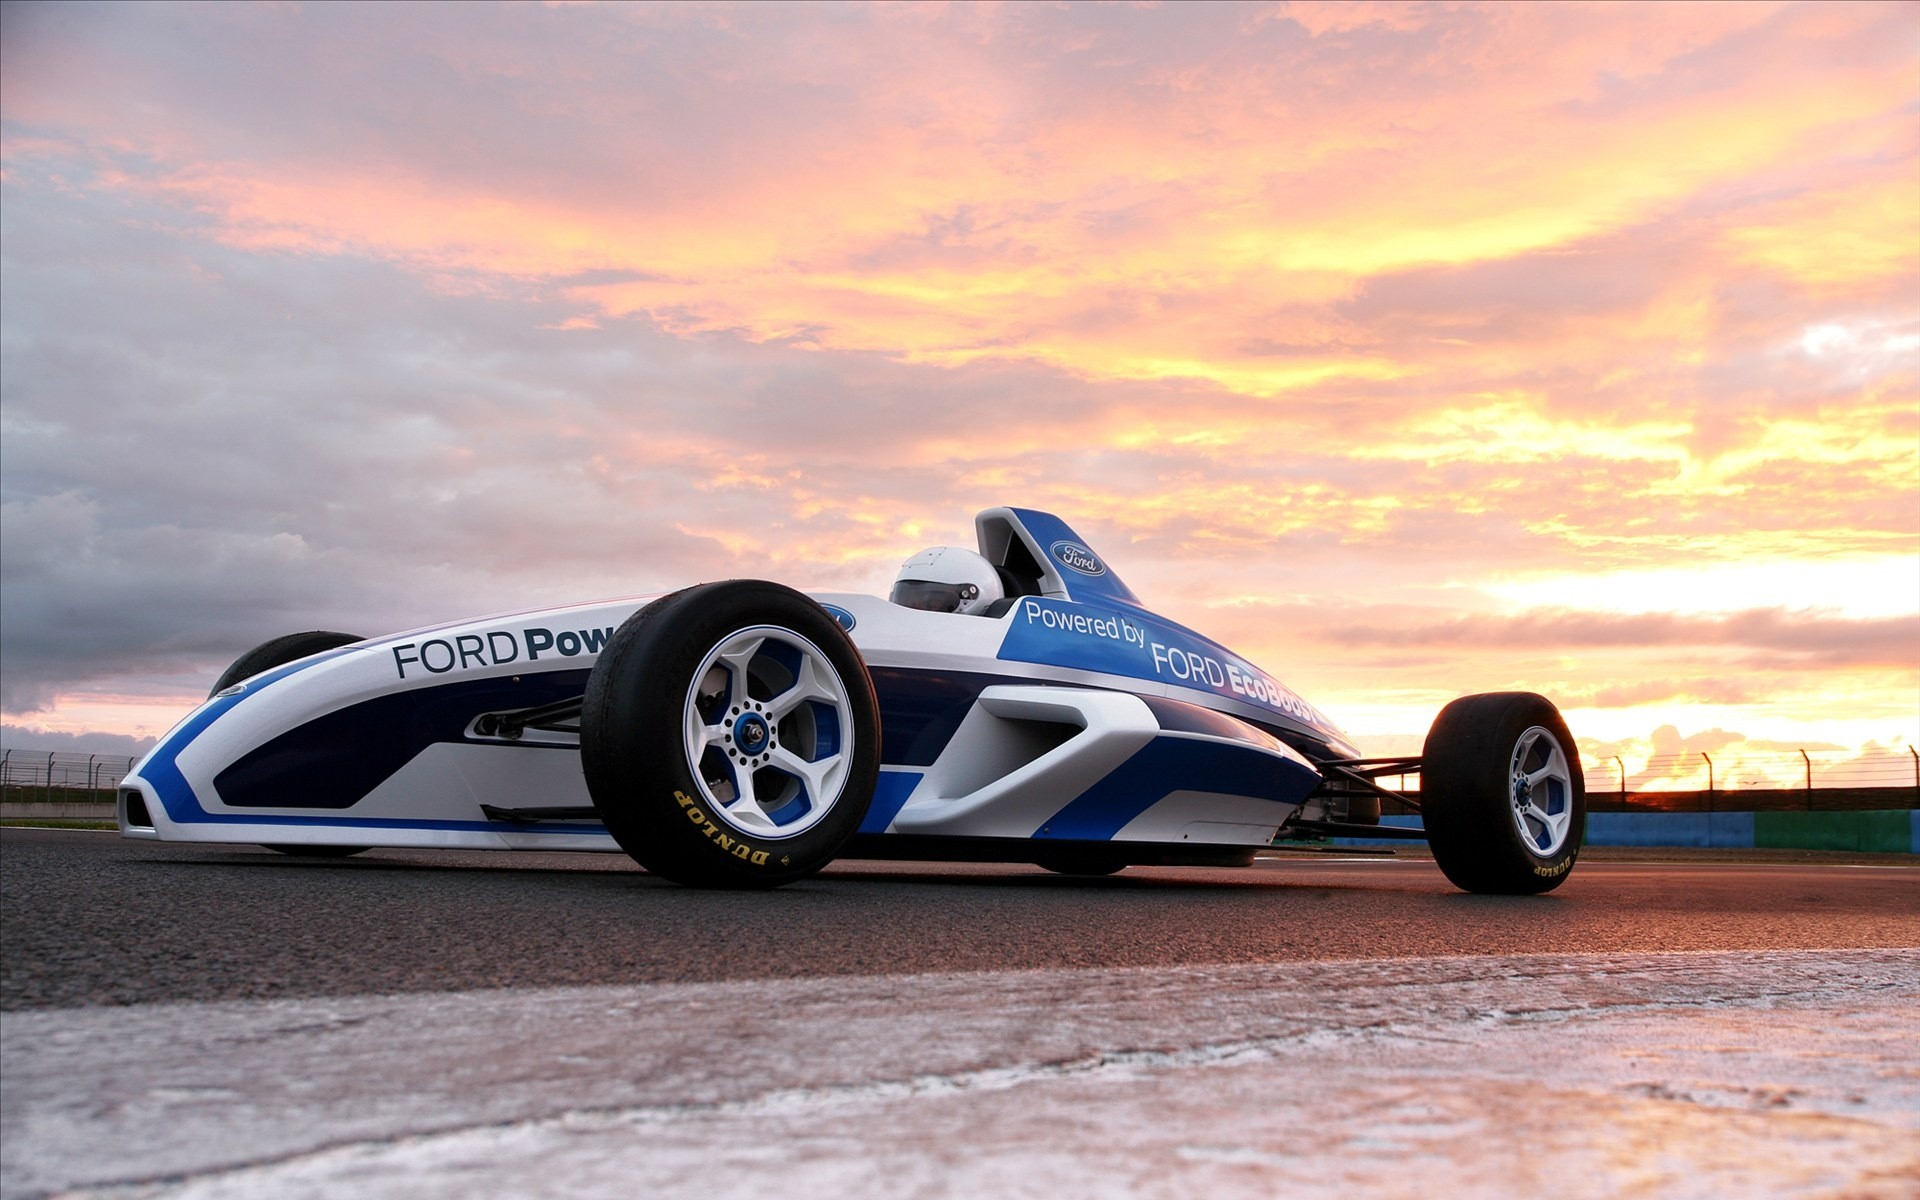 Ford Power F1 - 1920x1200